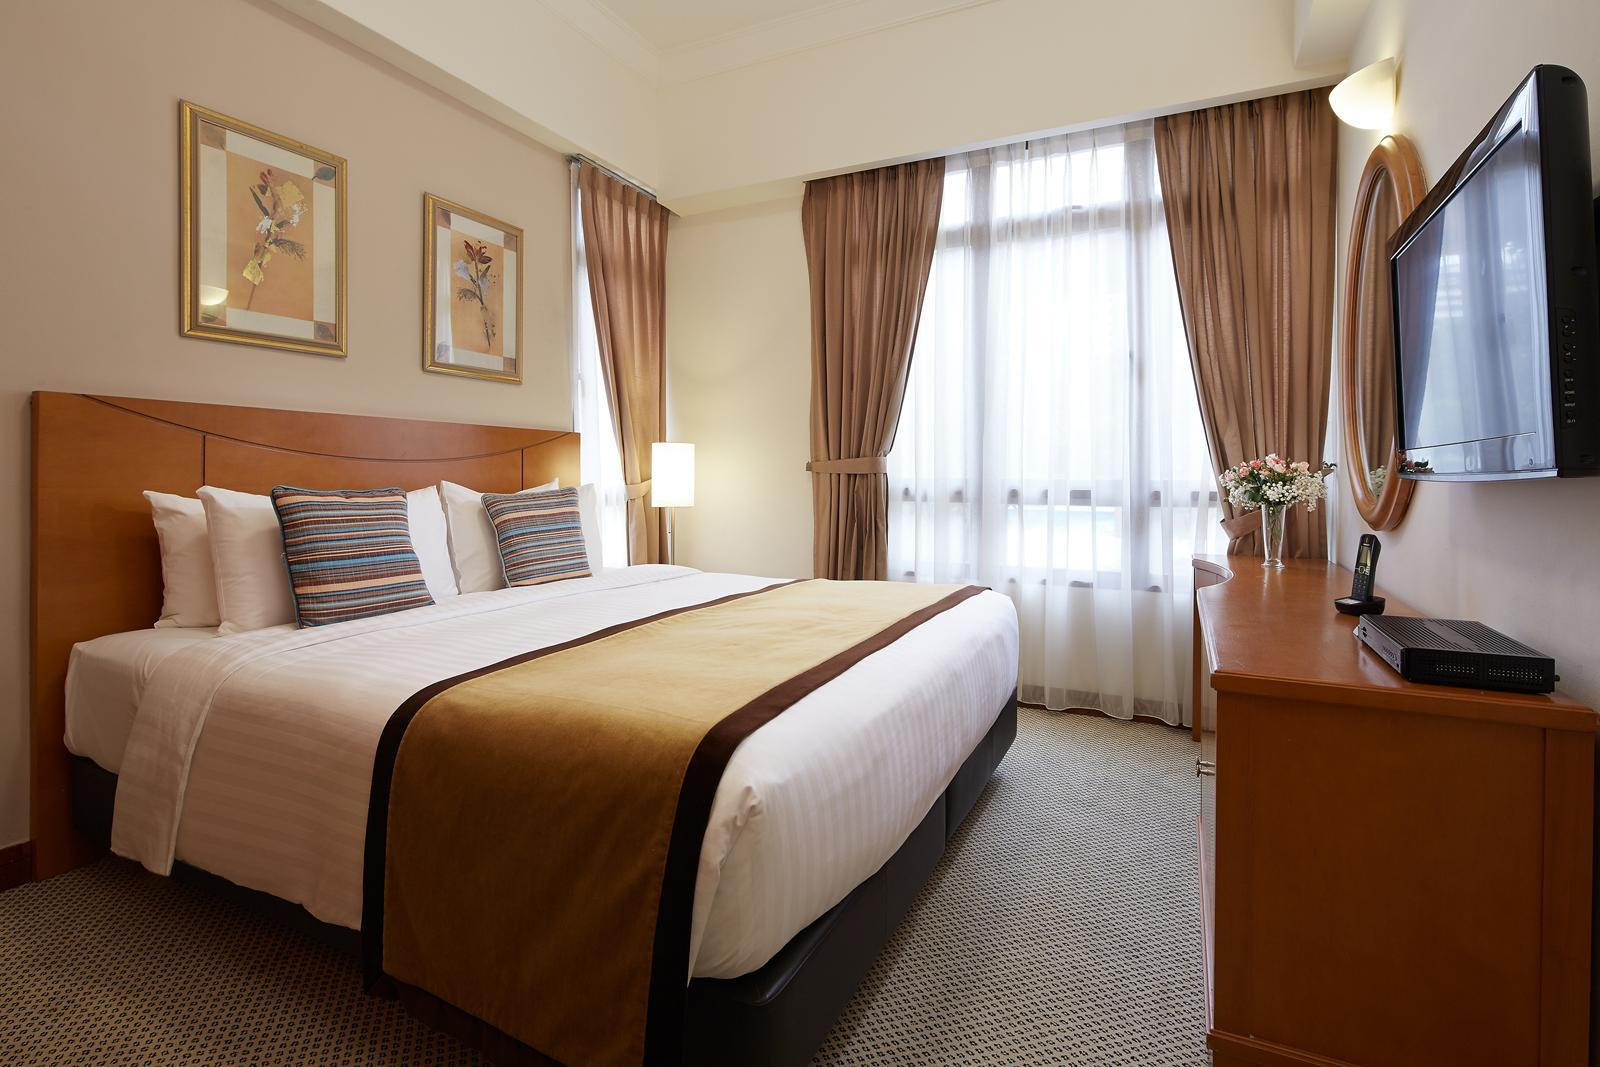 Village residence clarke quay by far east hospitality in - 2 bedroom hotel suites singapore ...